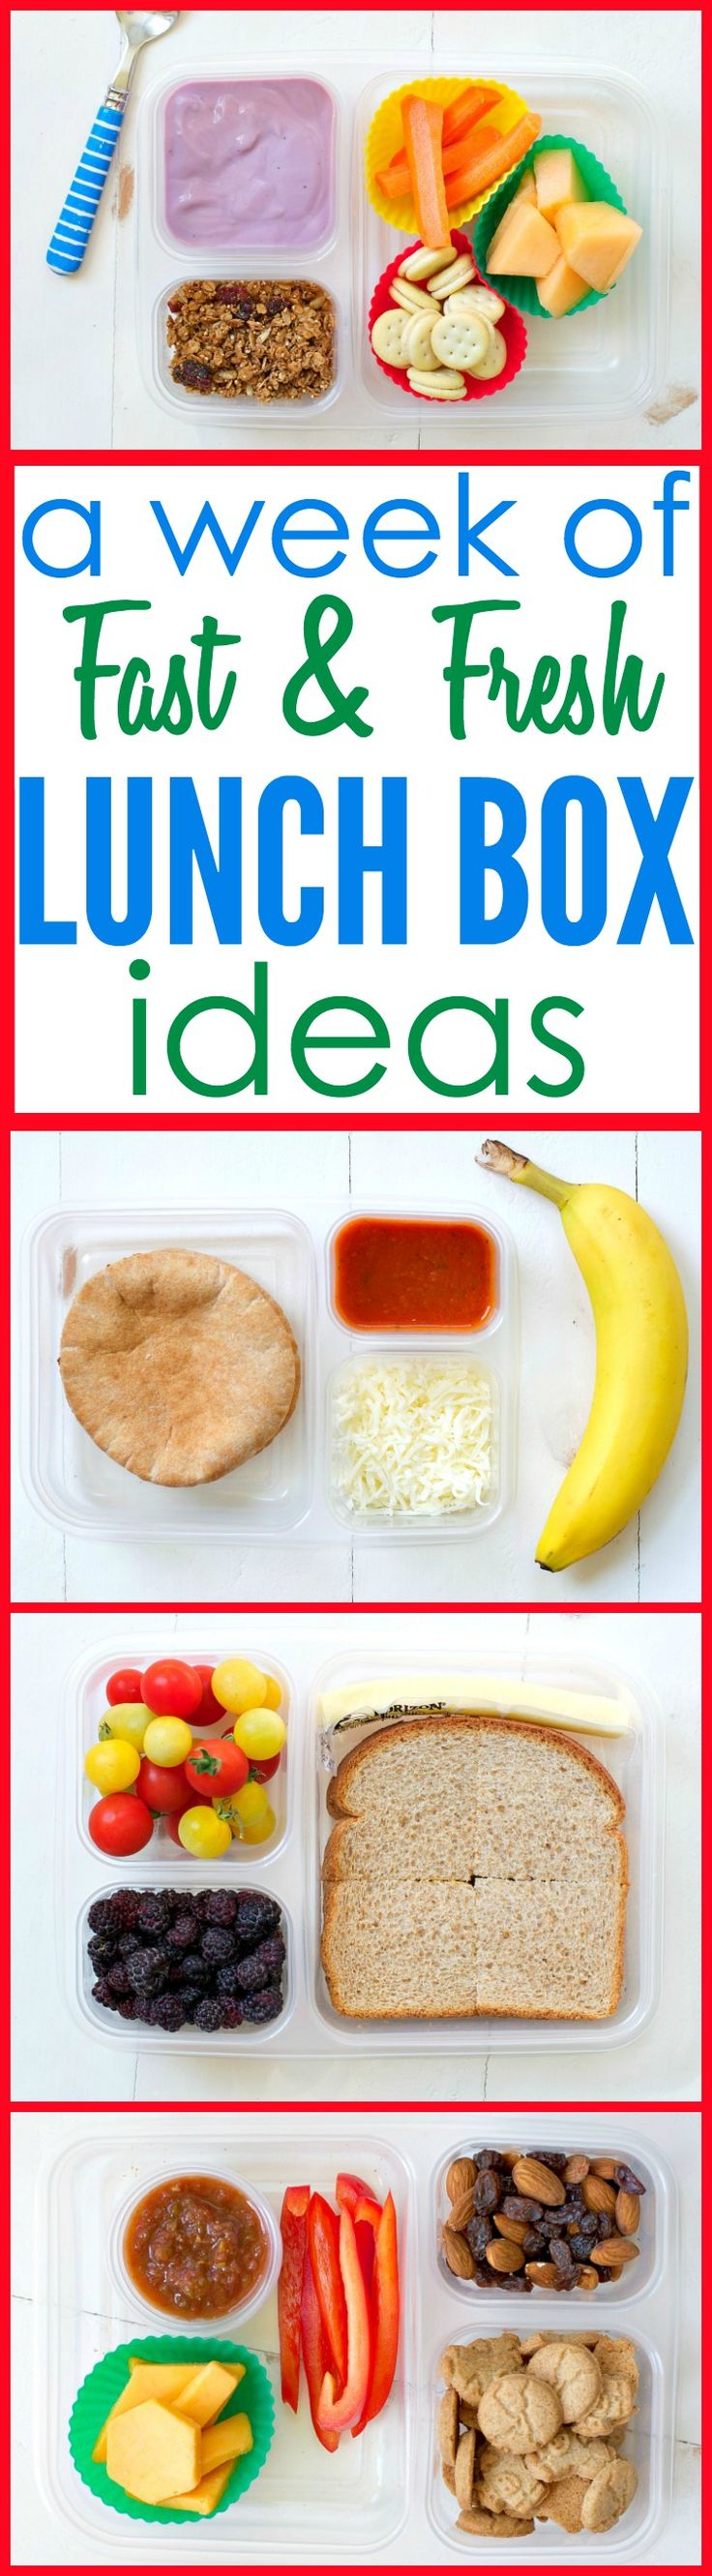 An entire week's worth of Fast and Fresh Lunch Box Ideas to take the guesswork…